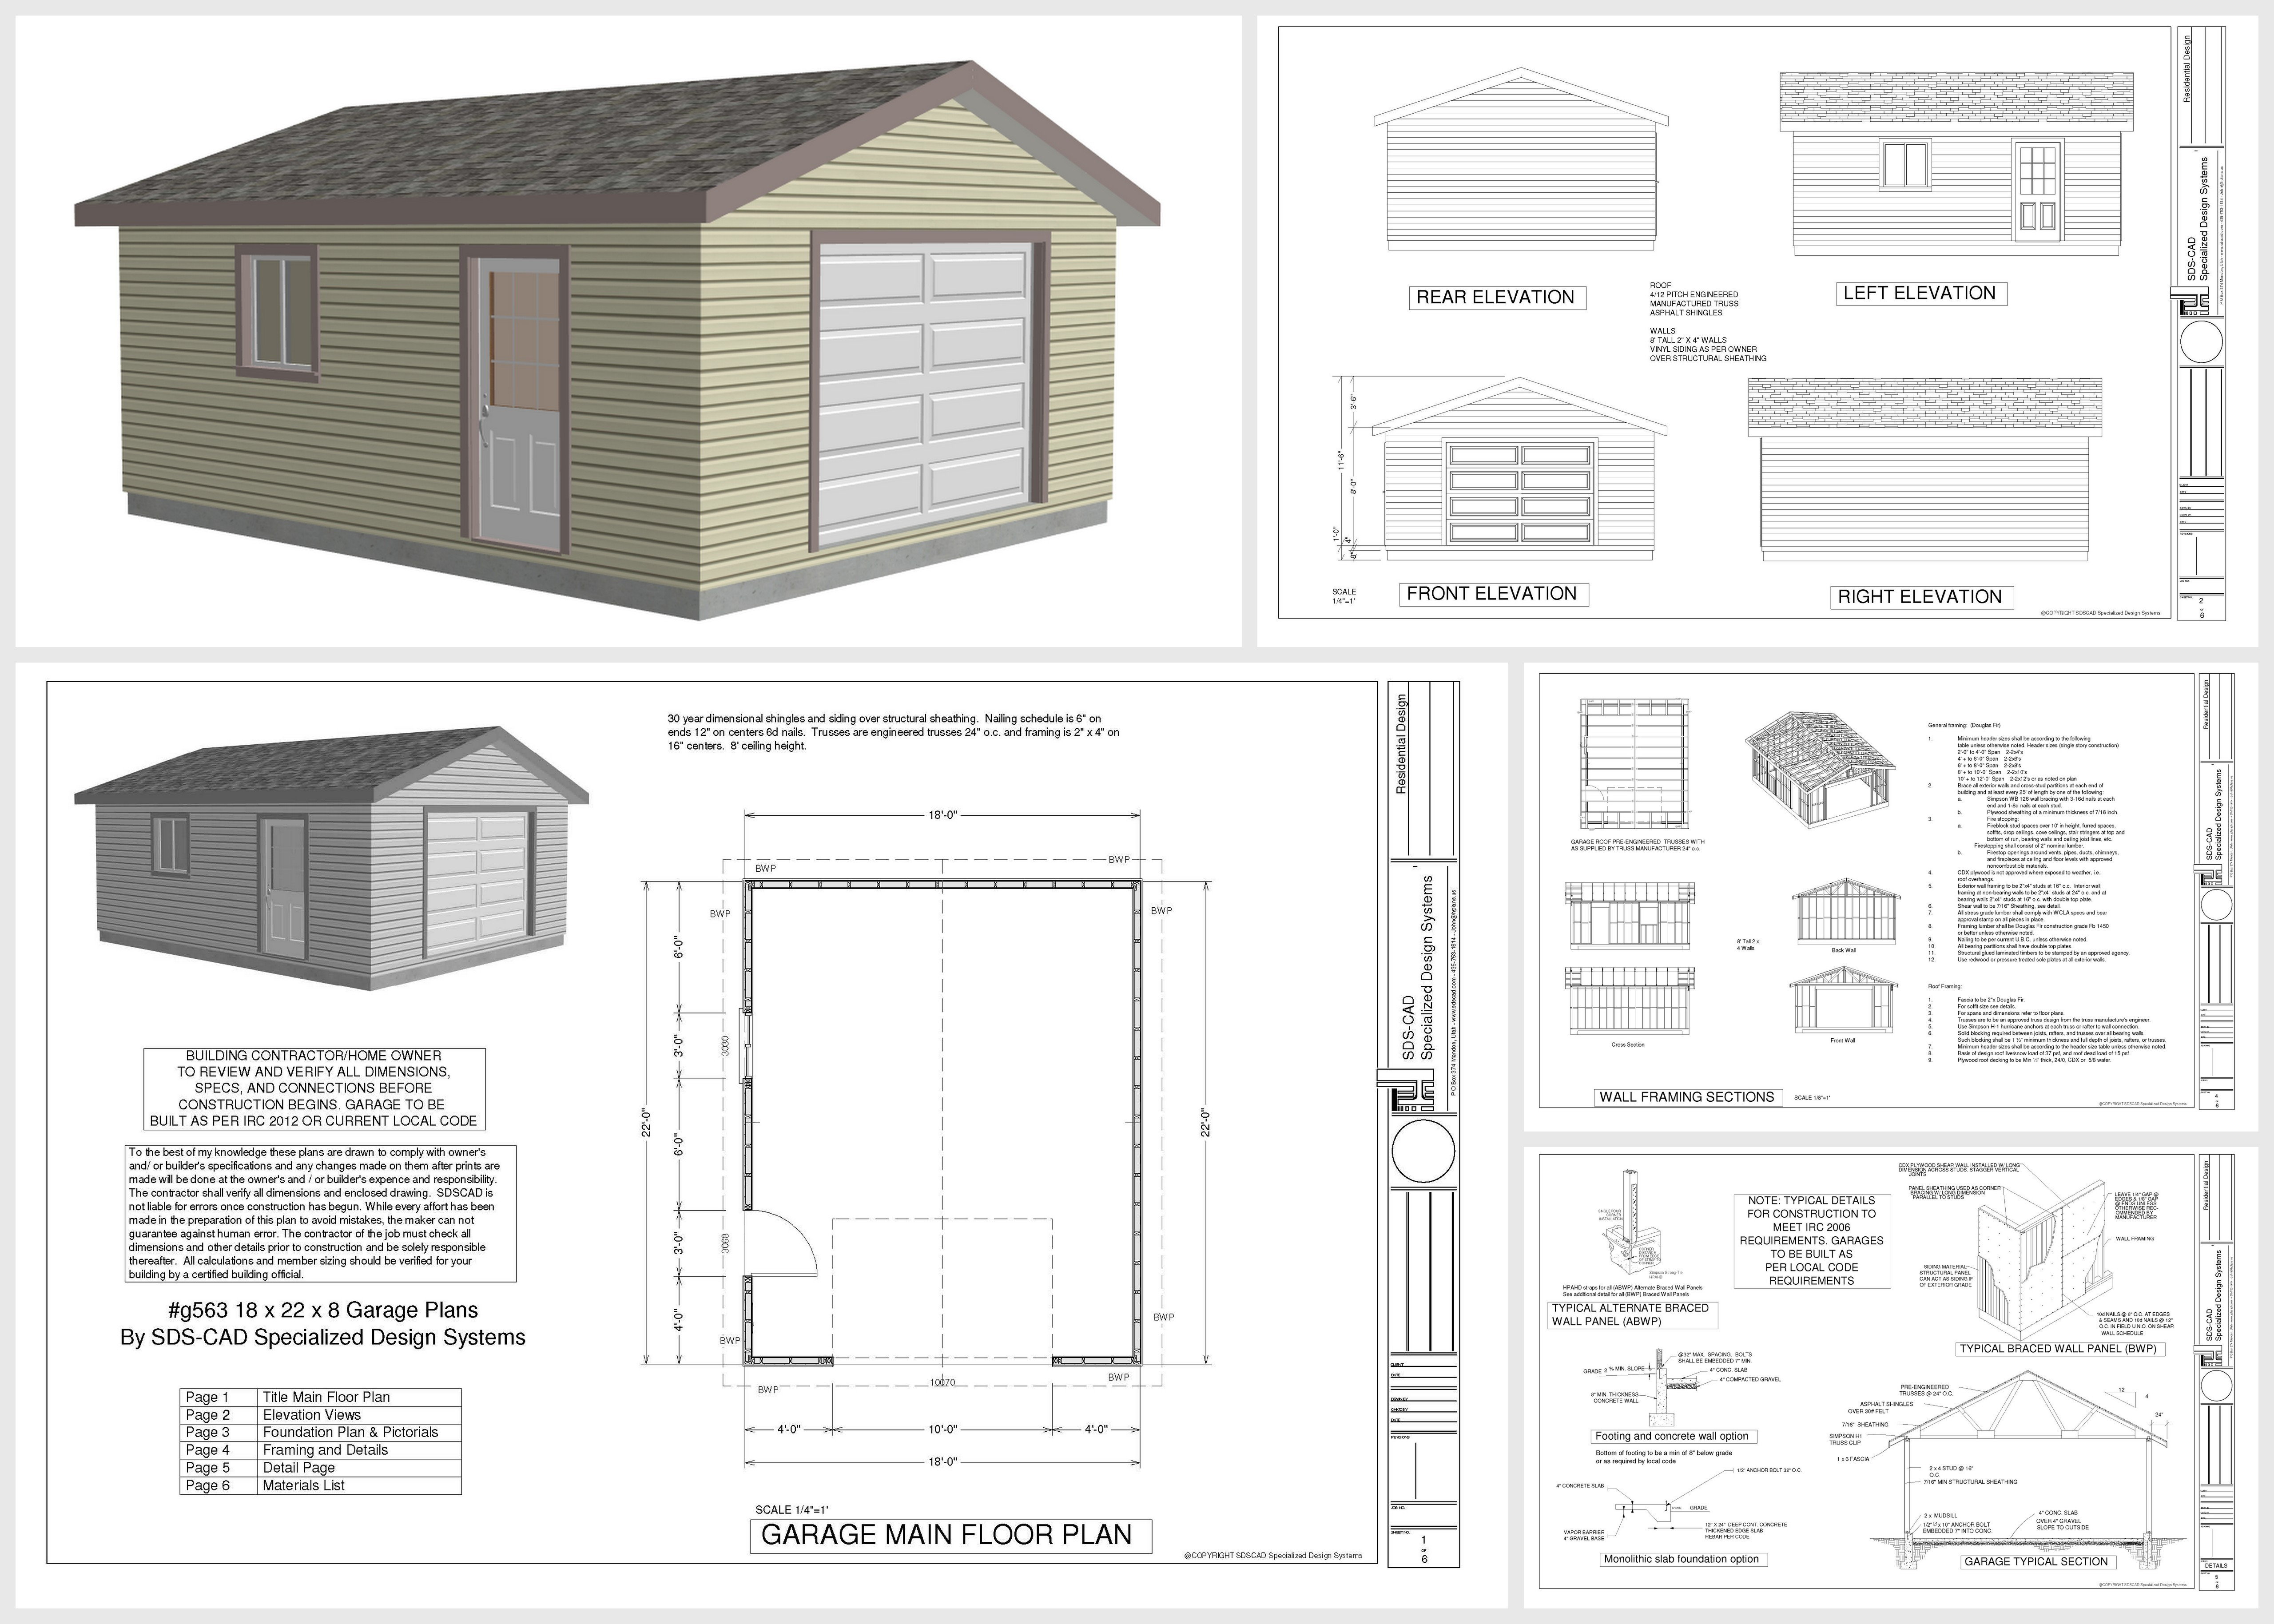 Garage plans sds plans Garage layout planner